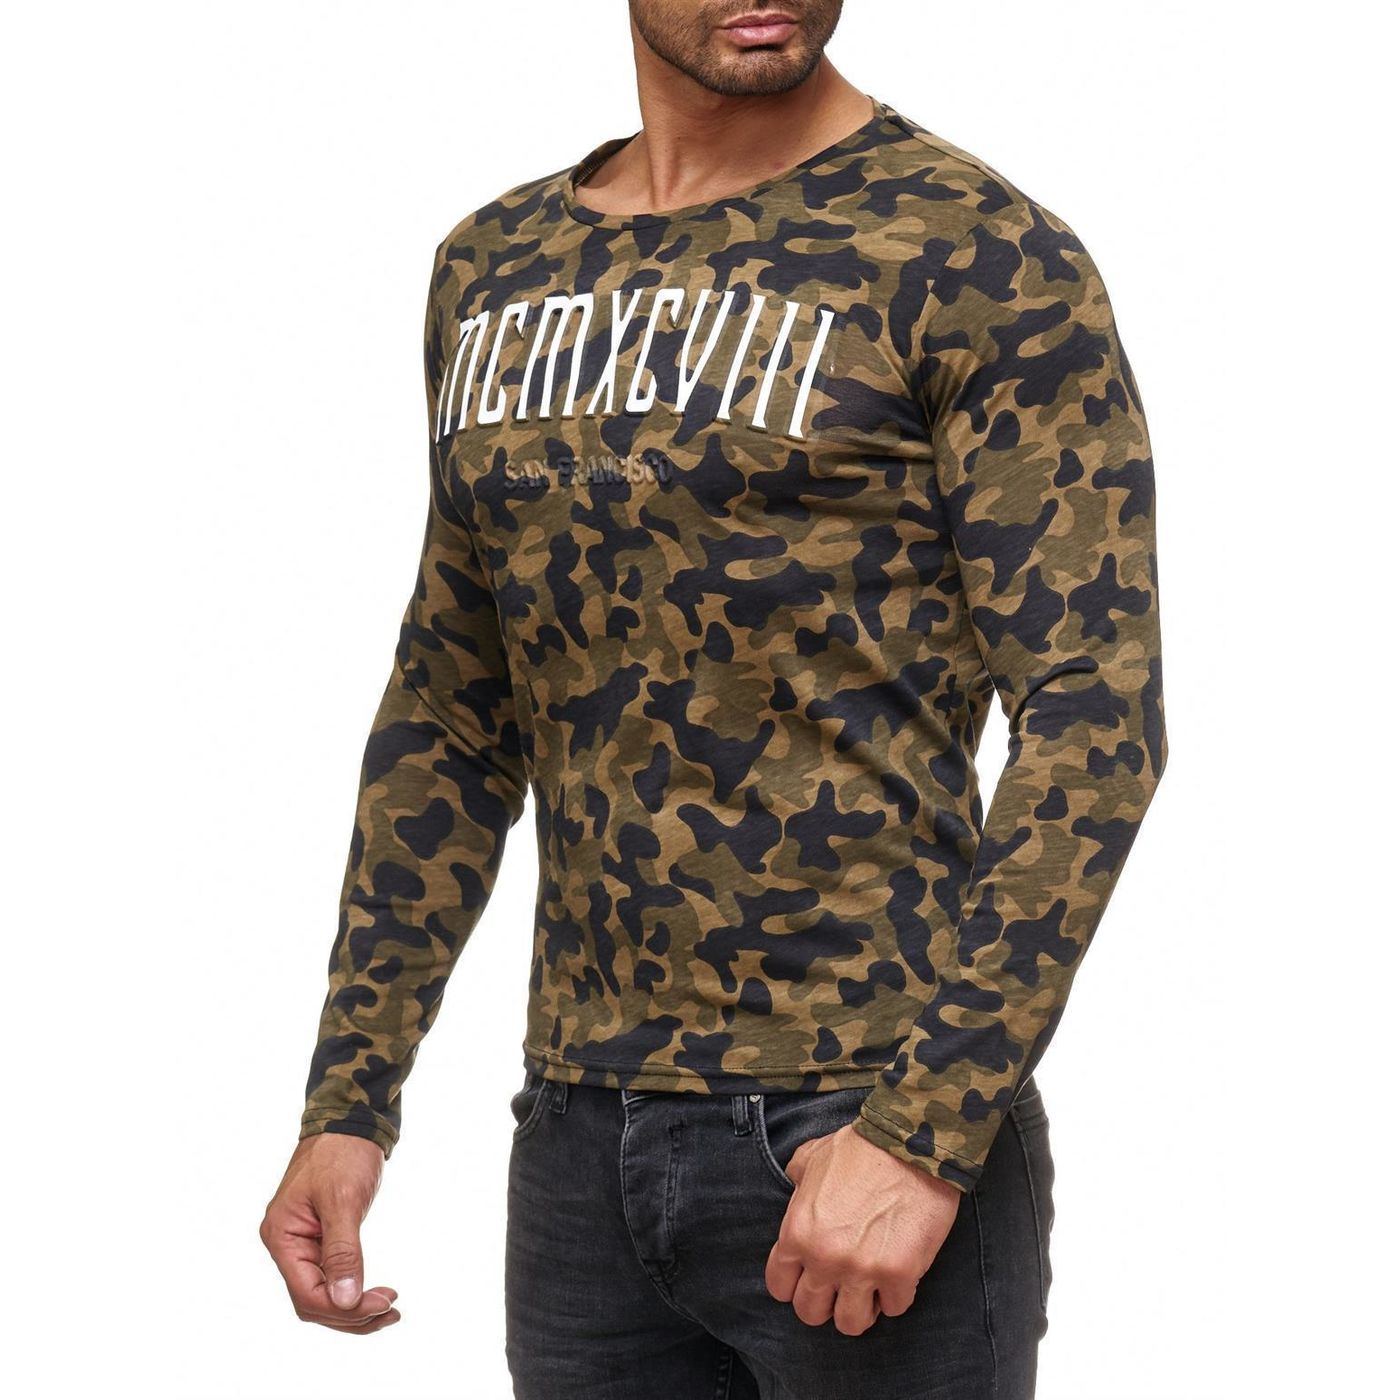 red bridge herren muscle camo mcmxcviii longsleeve. Black Bedroom Furniture Sets. Home Design Ideas